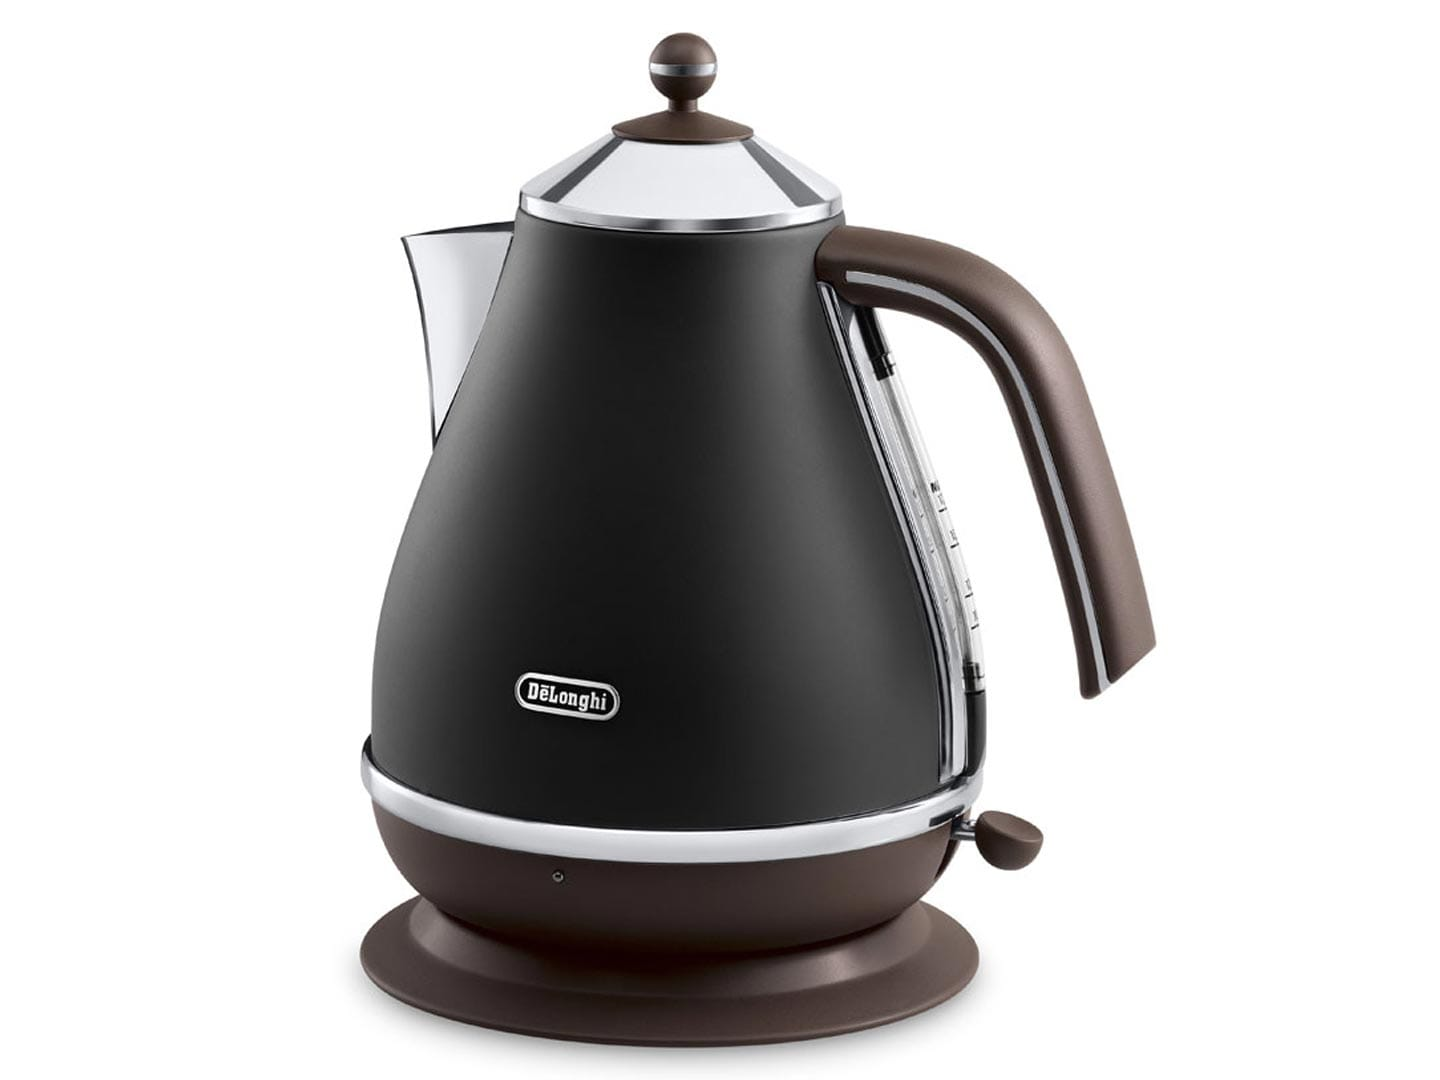 Icona Vintage Black Kettle - KBOV2001BK